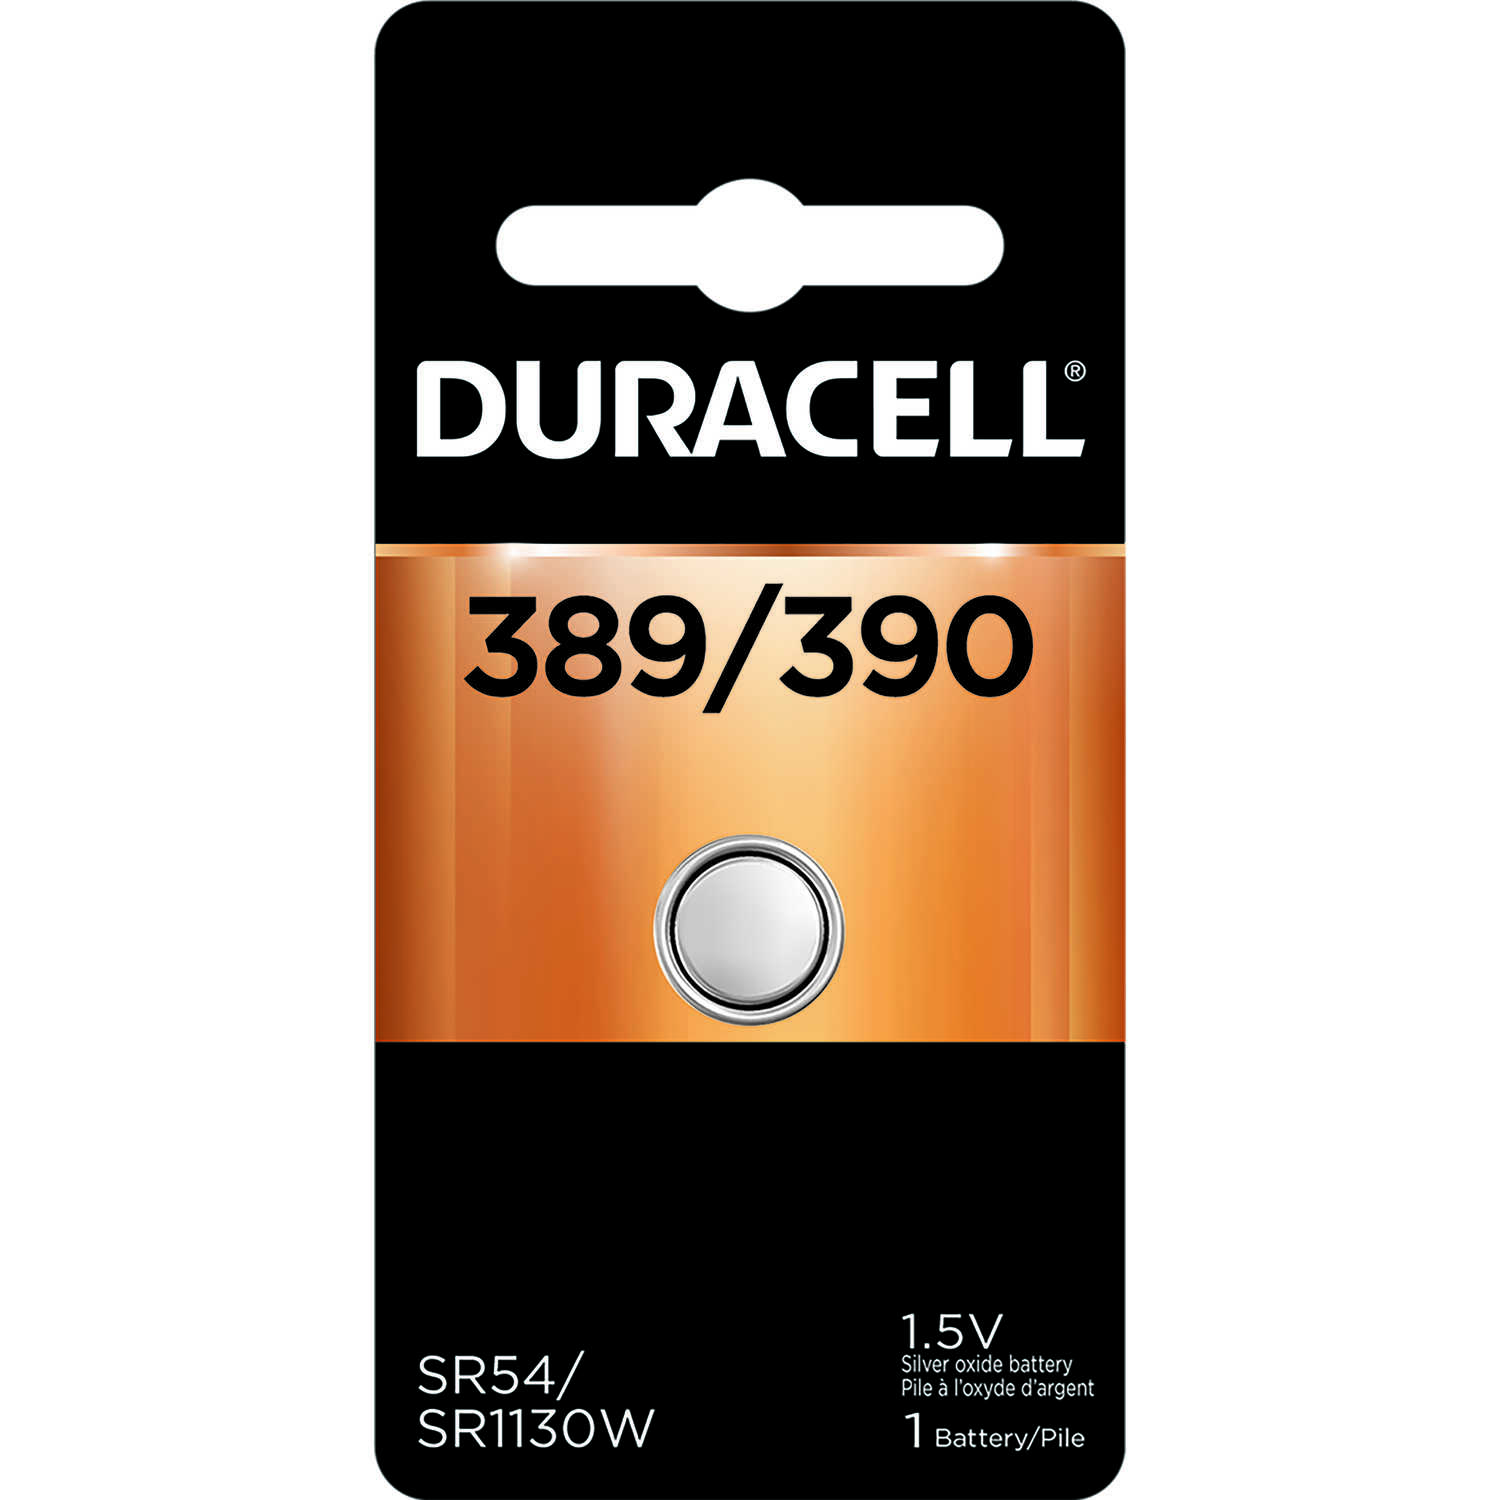 Duracell  Silver Oxide  389/390  1.5 volt 1 pk Electronic/Watch Battery